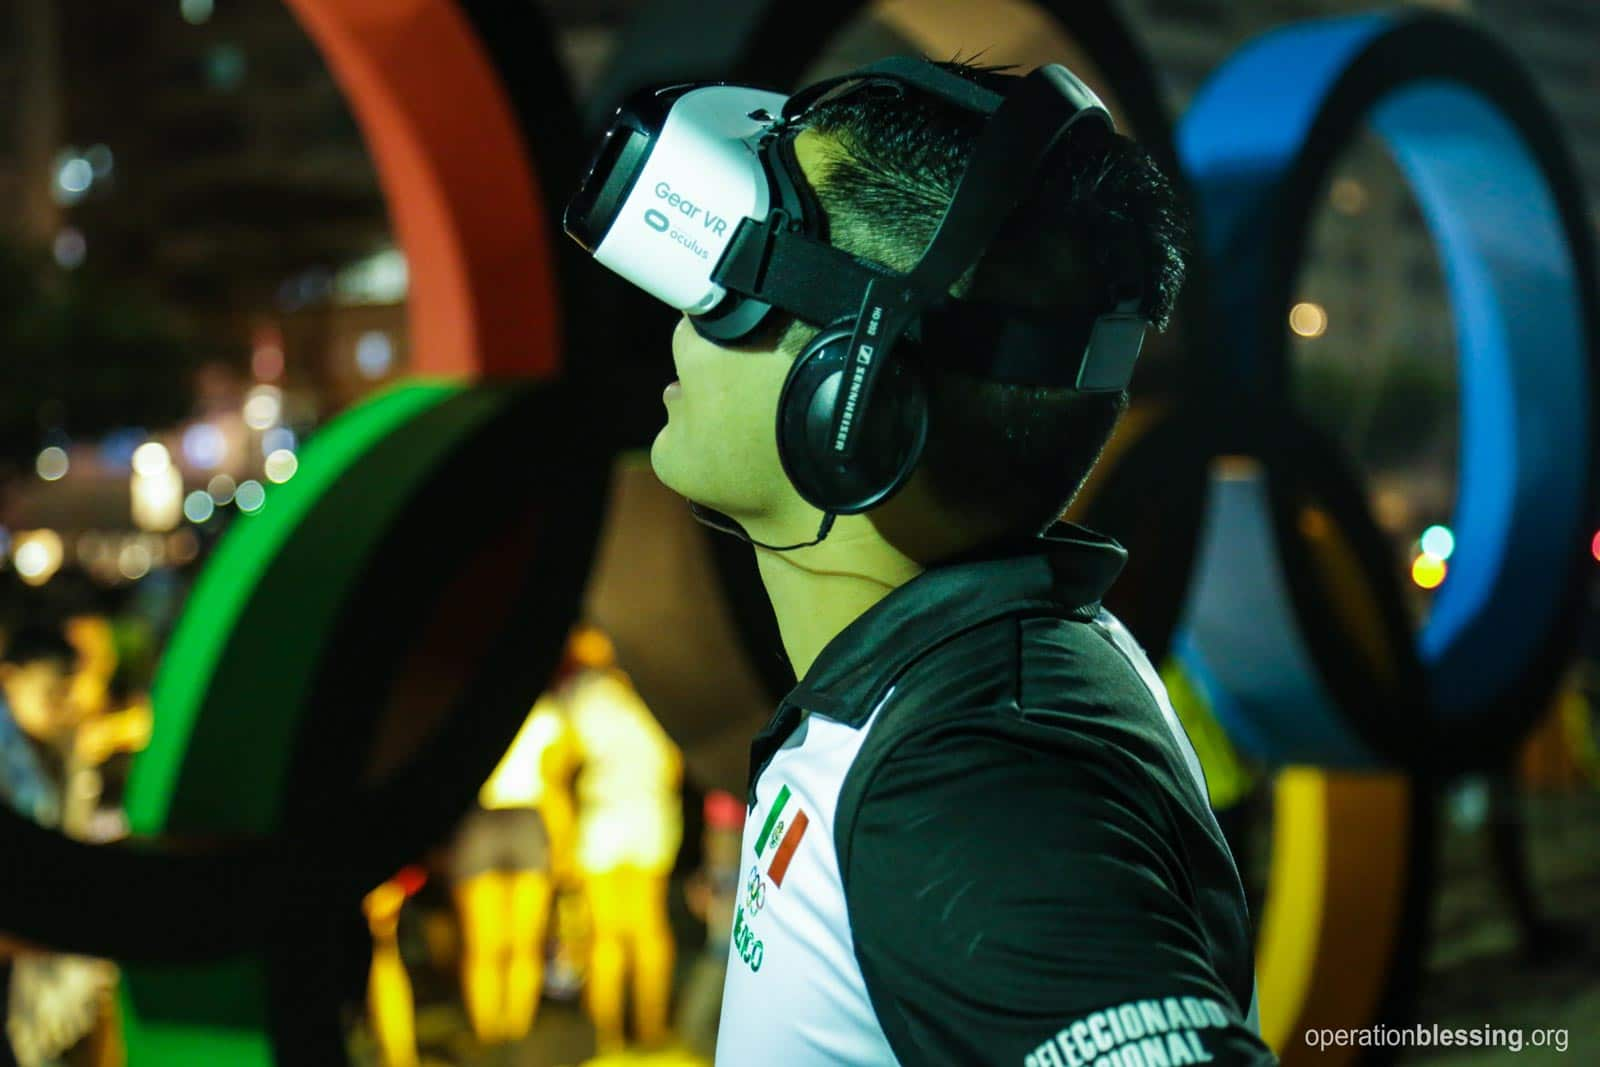 October Happenings kicks off with a young man in Rio coming face-to-face with human trafficking via virtual reality.